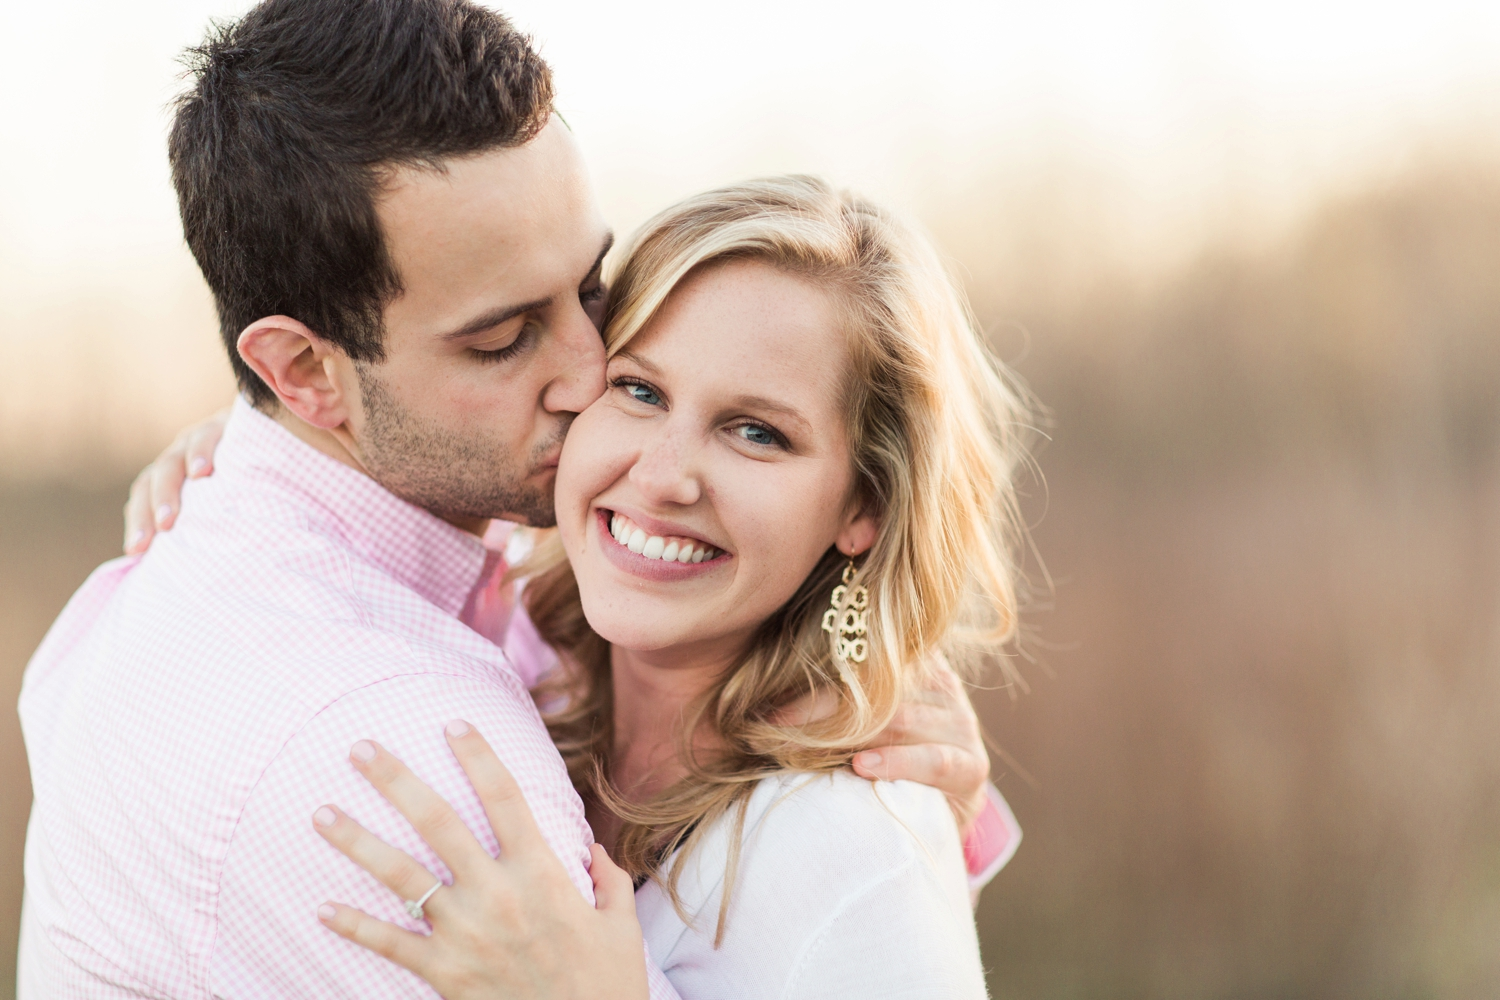 indianapolis_wedding_photographer_golden_hour_engagement_chloe_luka_photography_6150.jpg